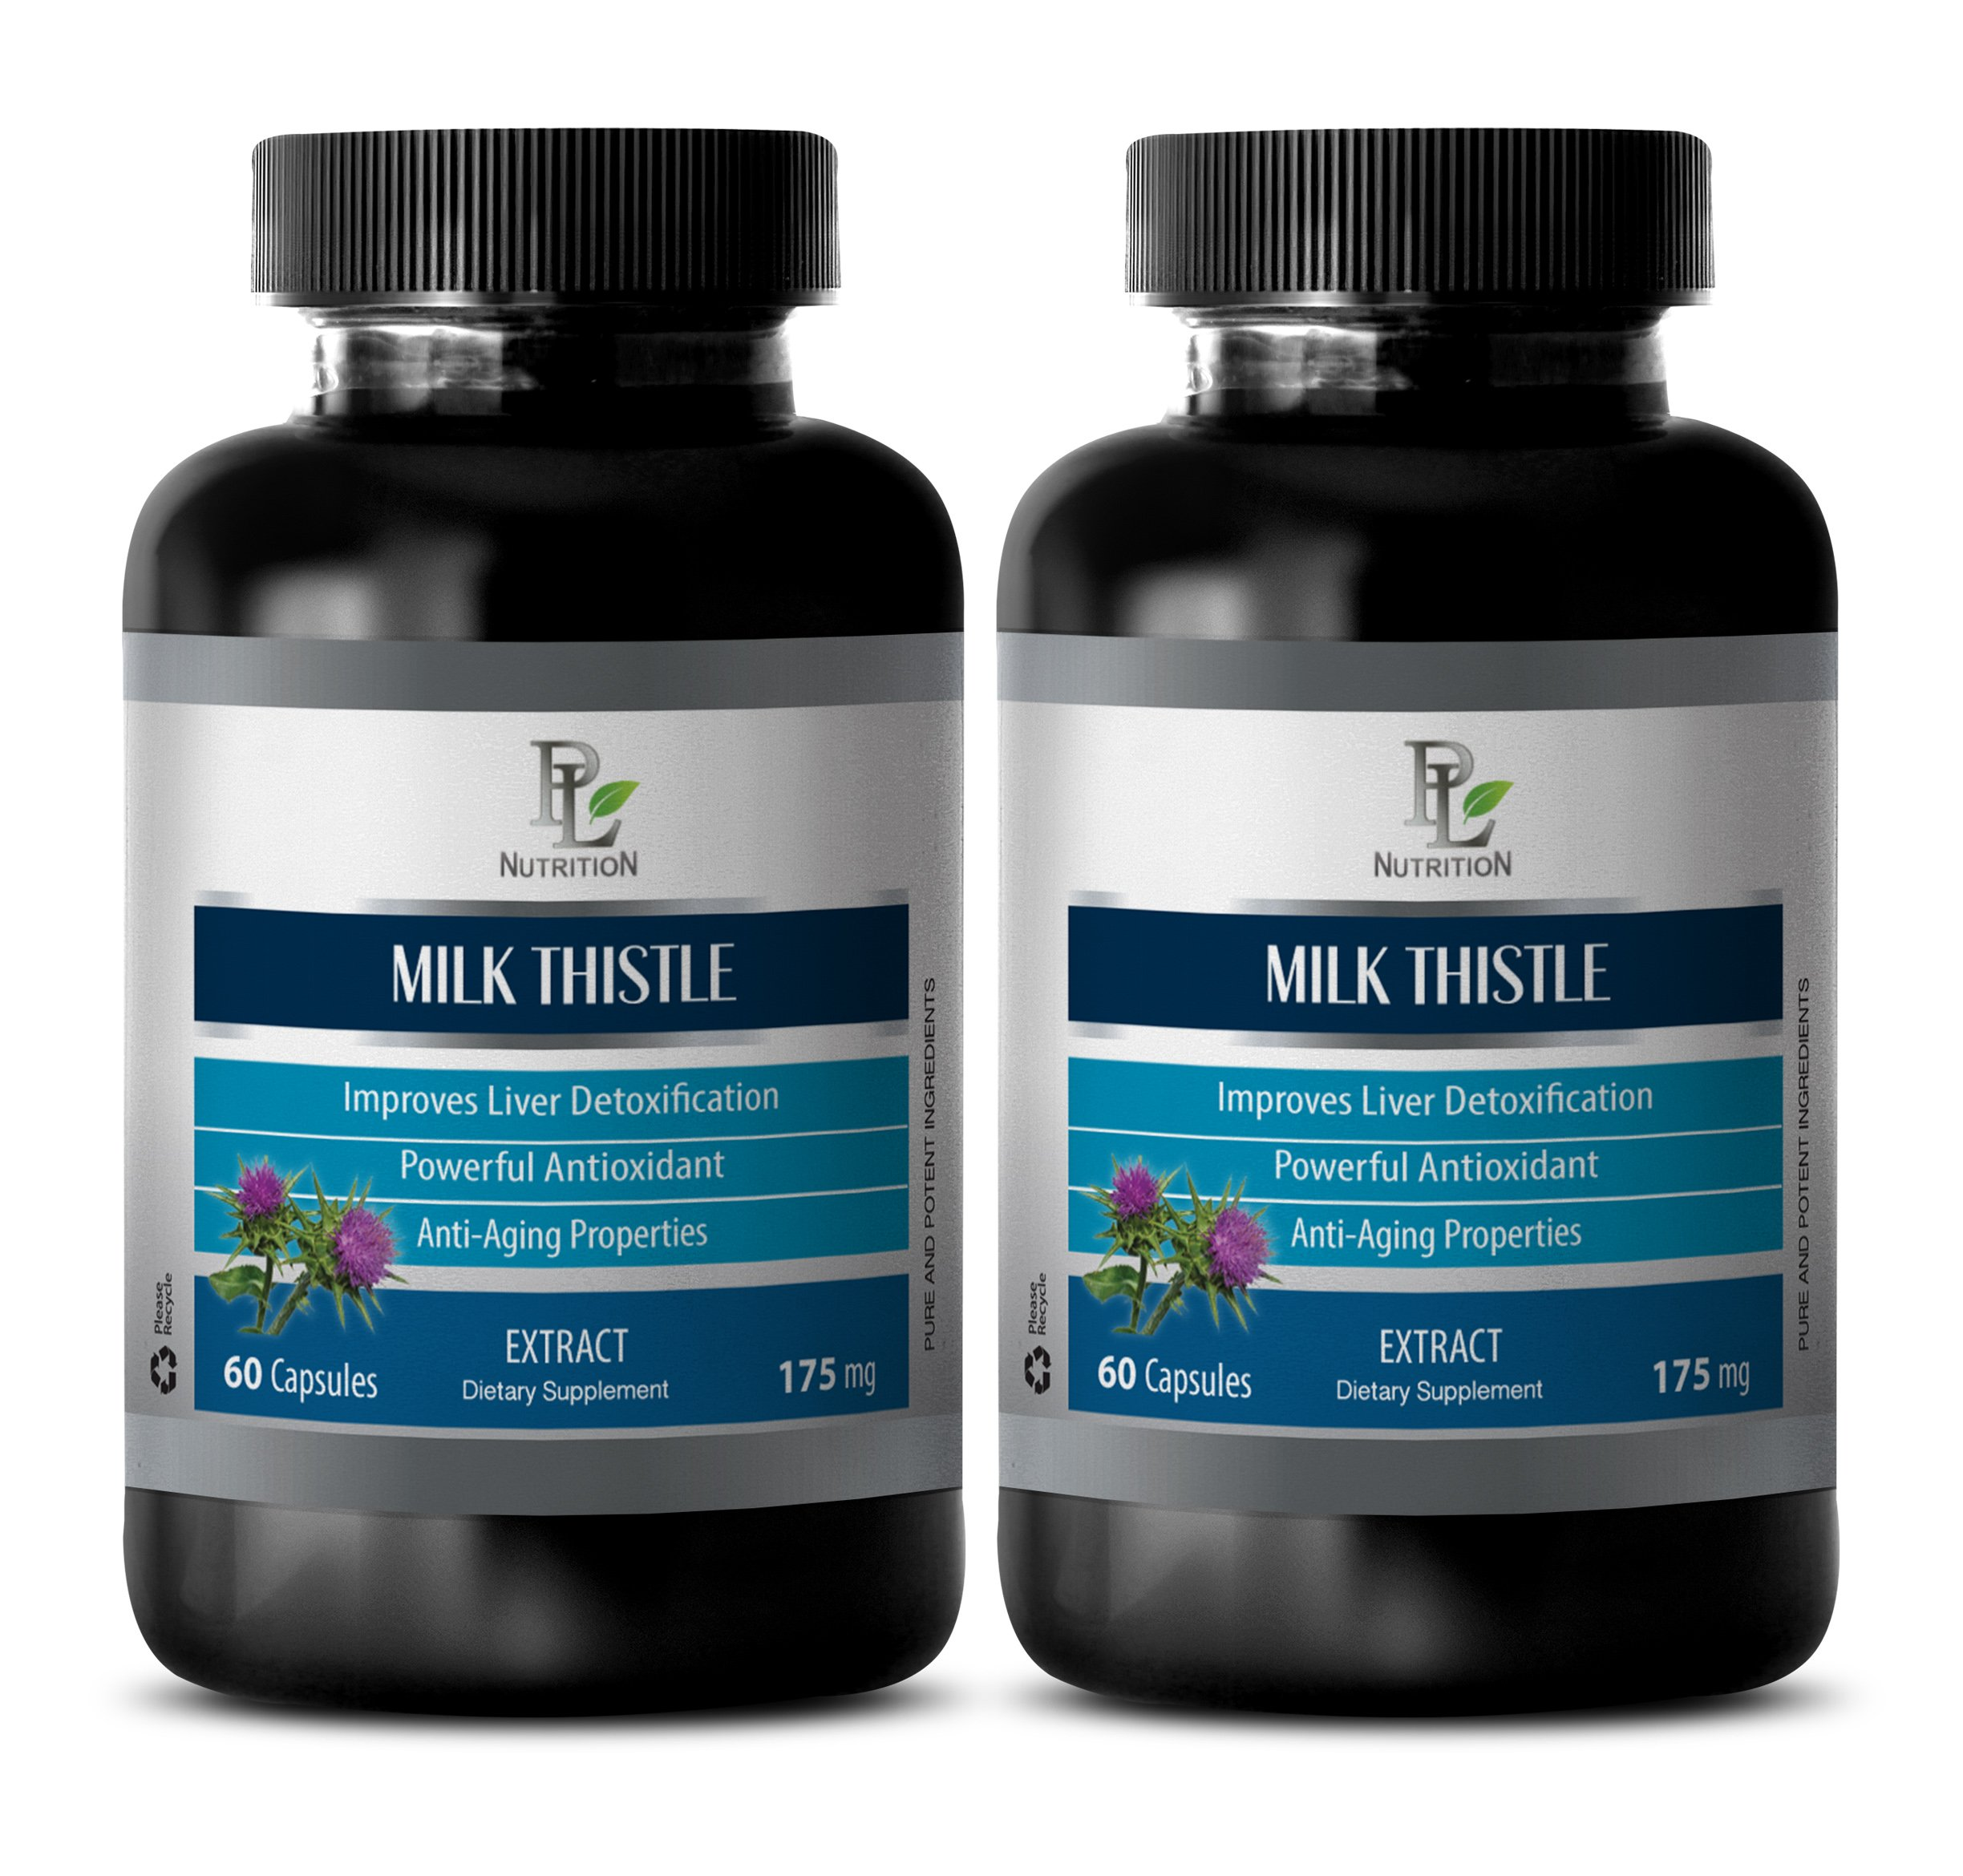 Kidney Support - MILK THISTLE SEED EXTRACT 175 - Milk thistle - 2 Bottle 120 Capsules